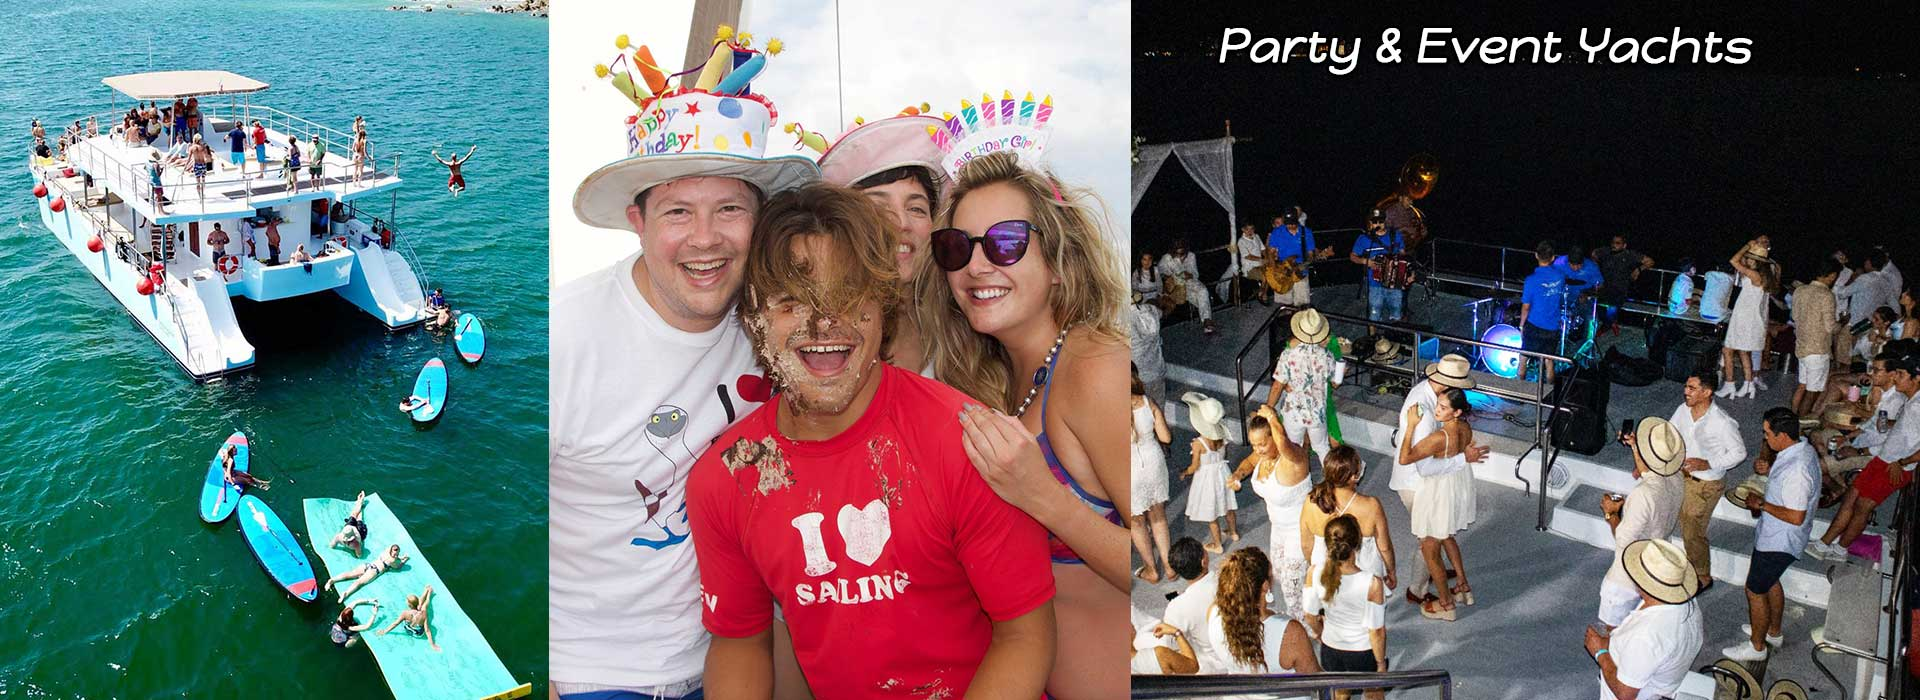 Party-&-Event-Yachts